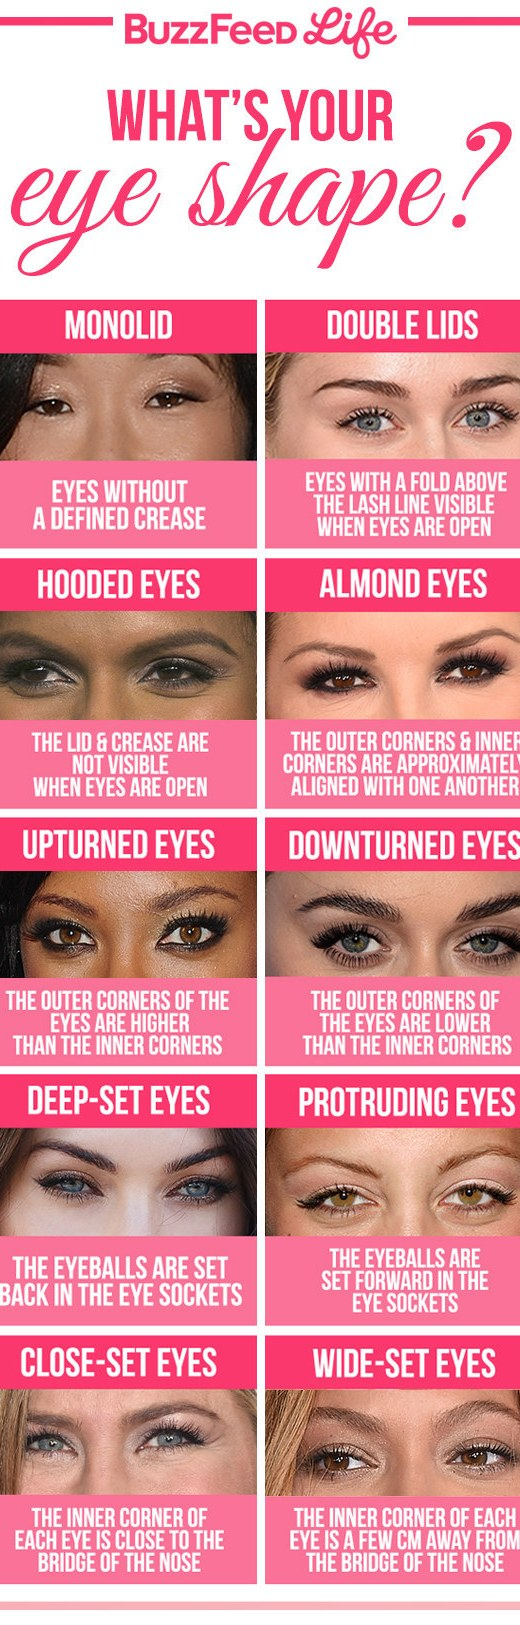 what's your eye shape